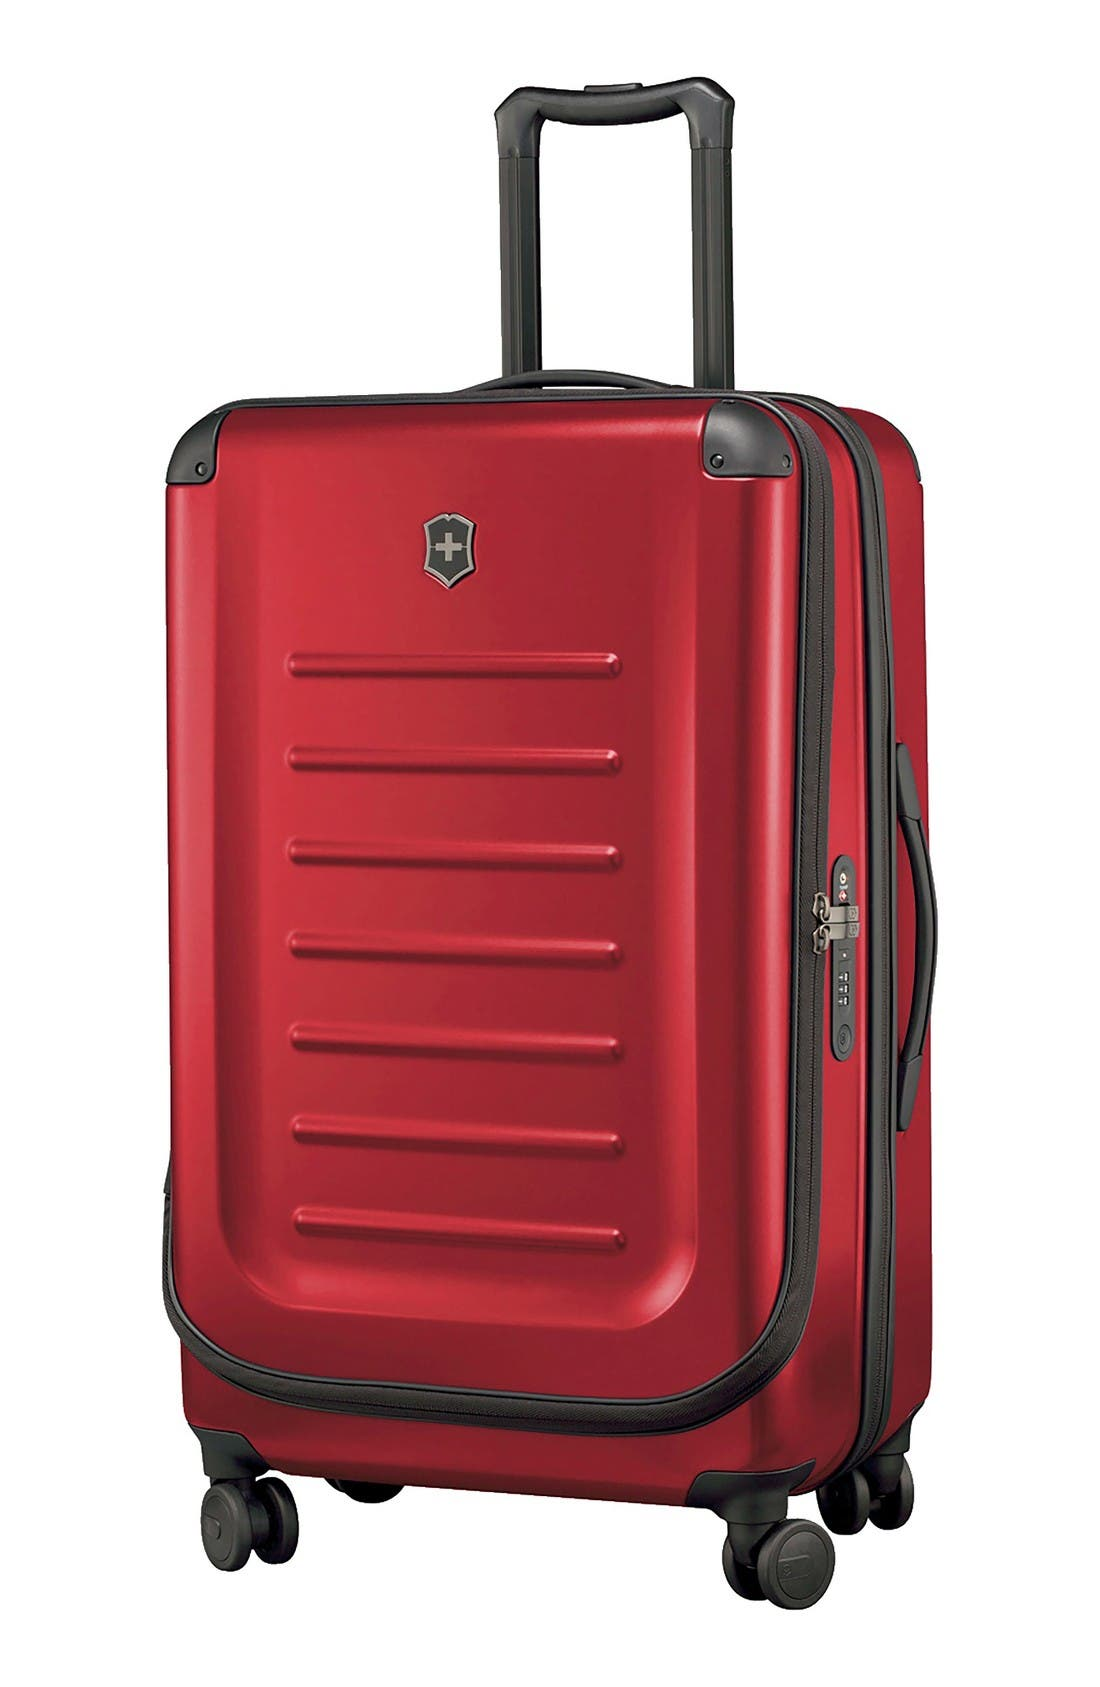 Victorinox Swiss Army® Spectra 2.0 30 Inch Hard Sided Rolling Travel Suitcase